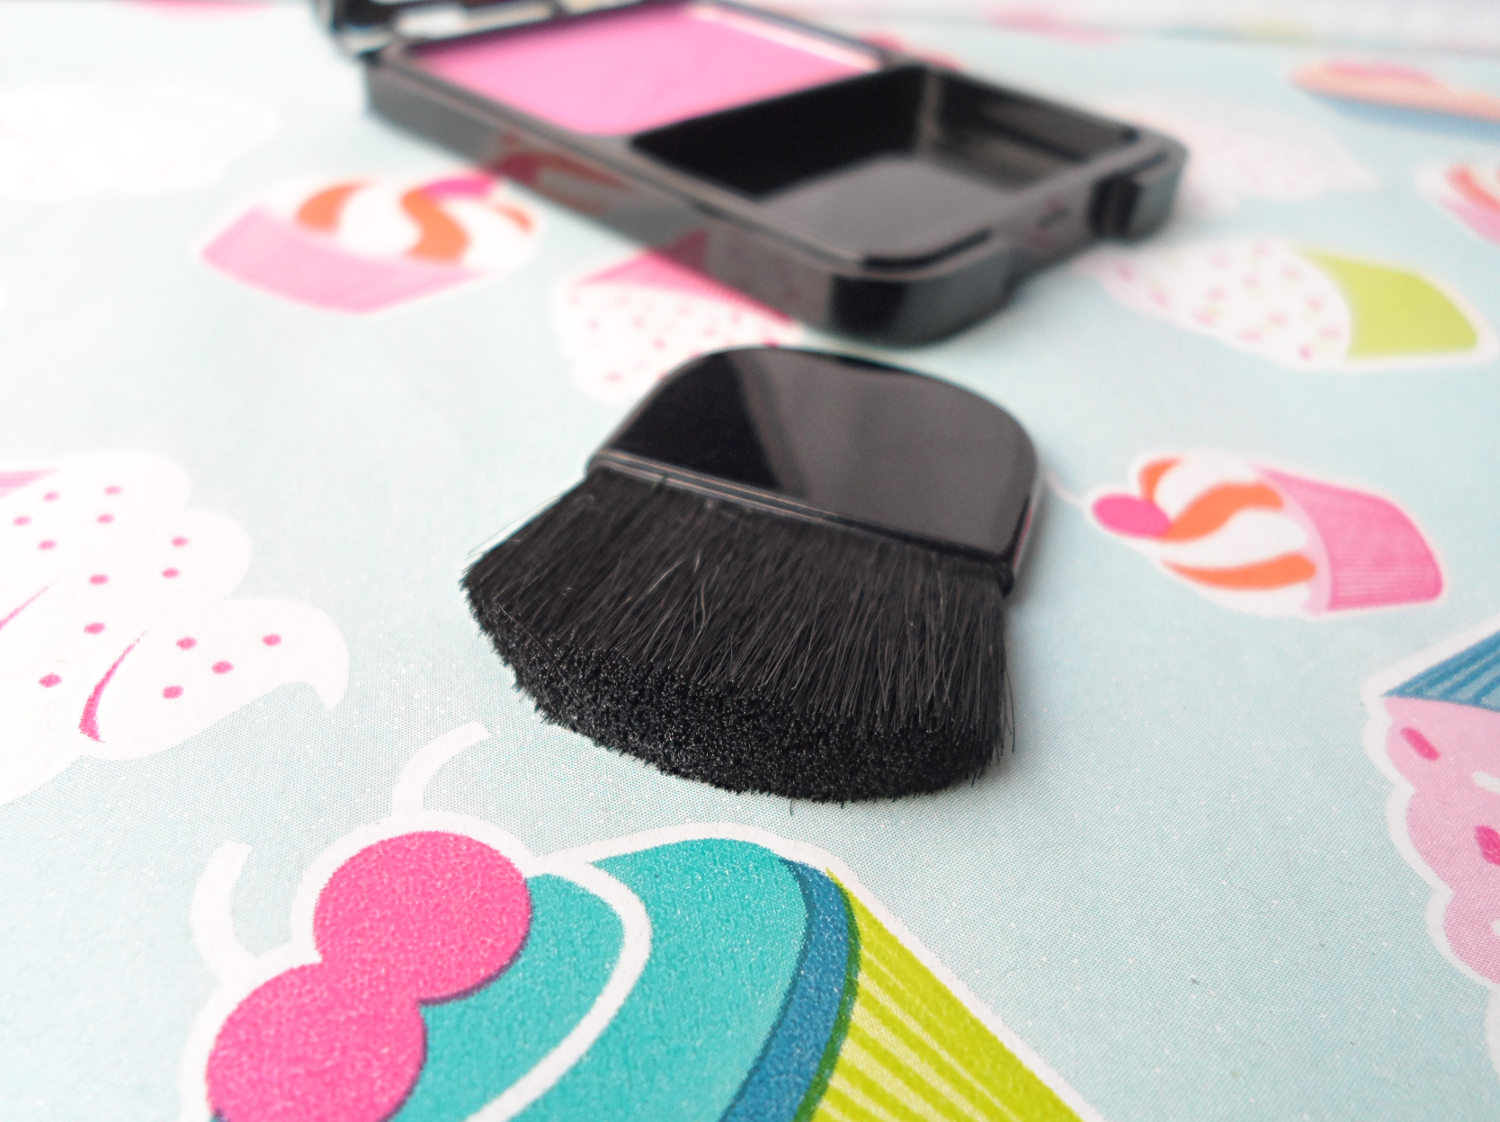 Beauty UK blush brush review pictures Beauty UK Blush & Brush Review and Swatches liz breygel january girl